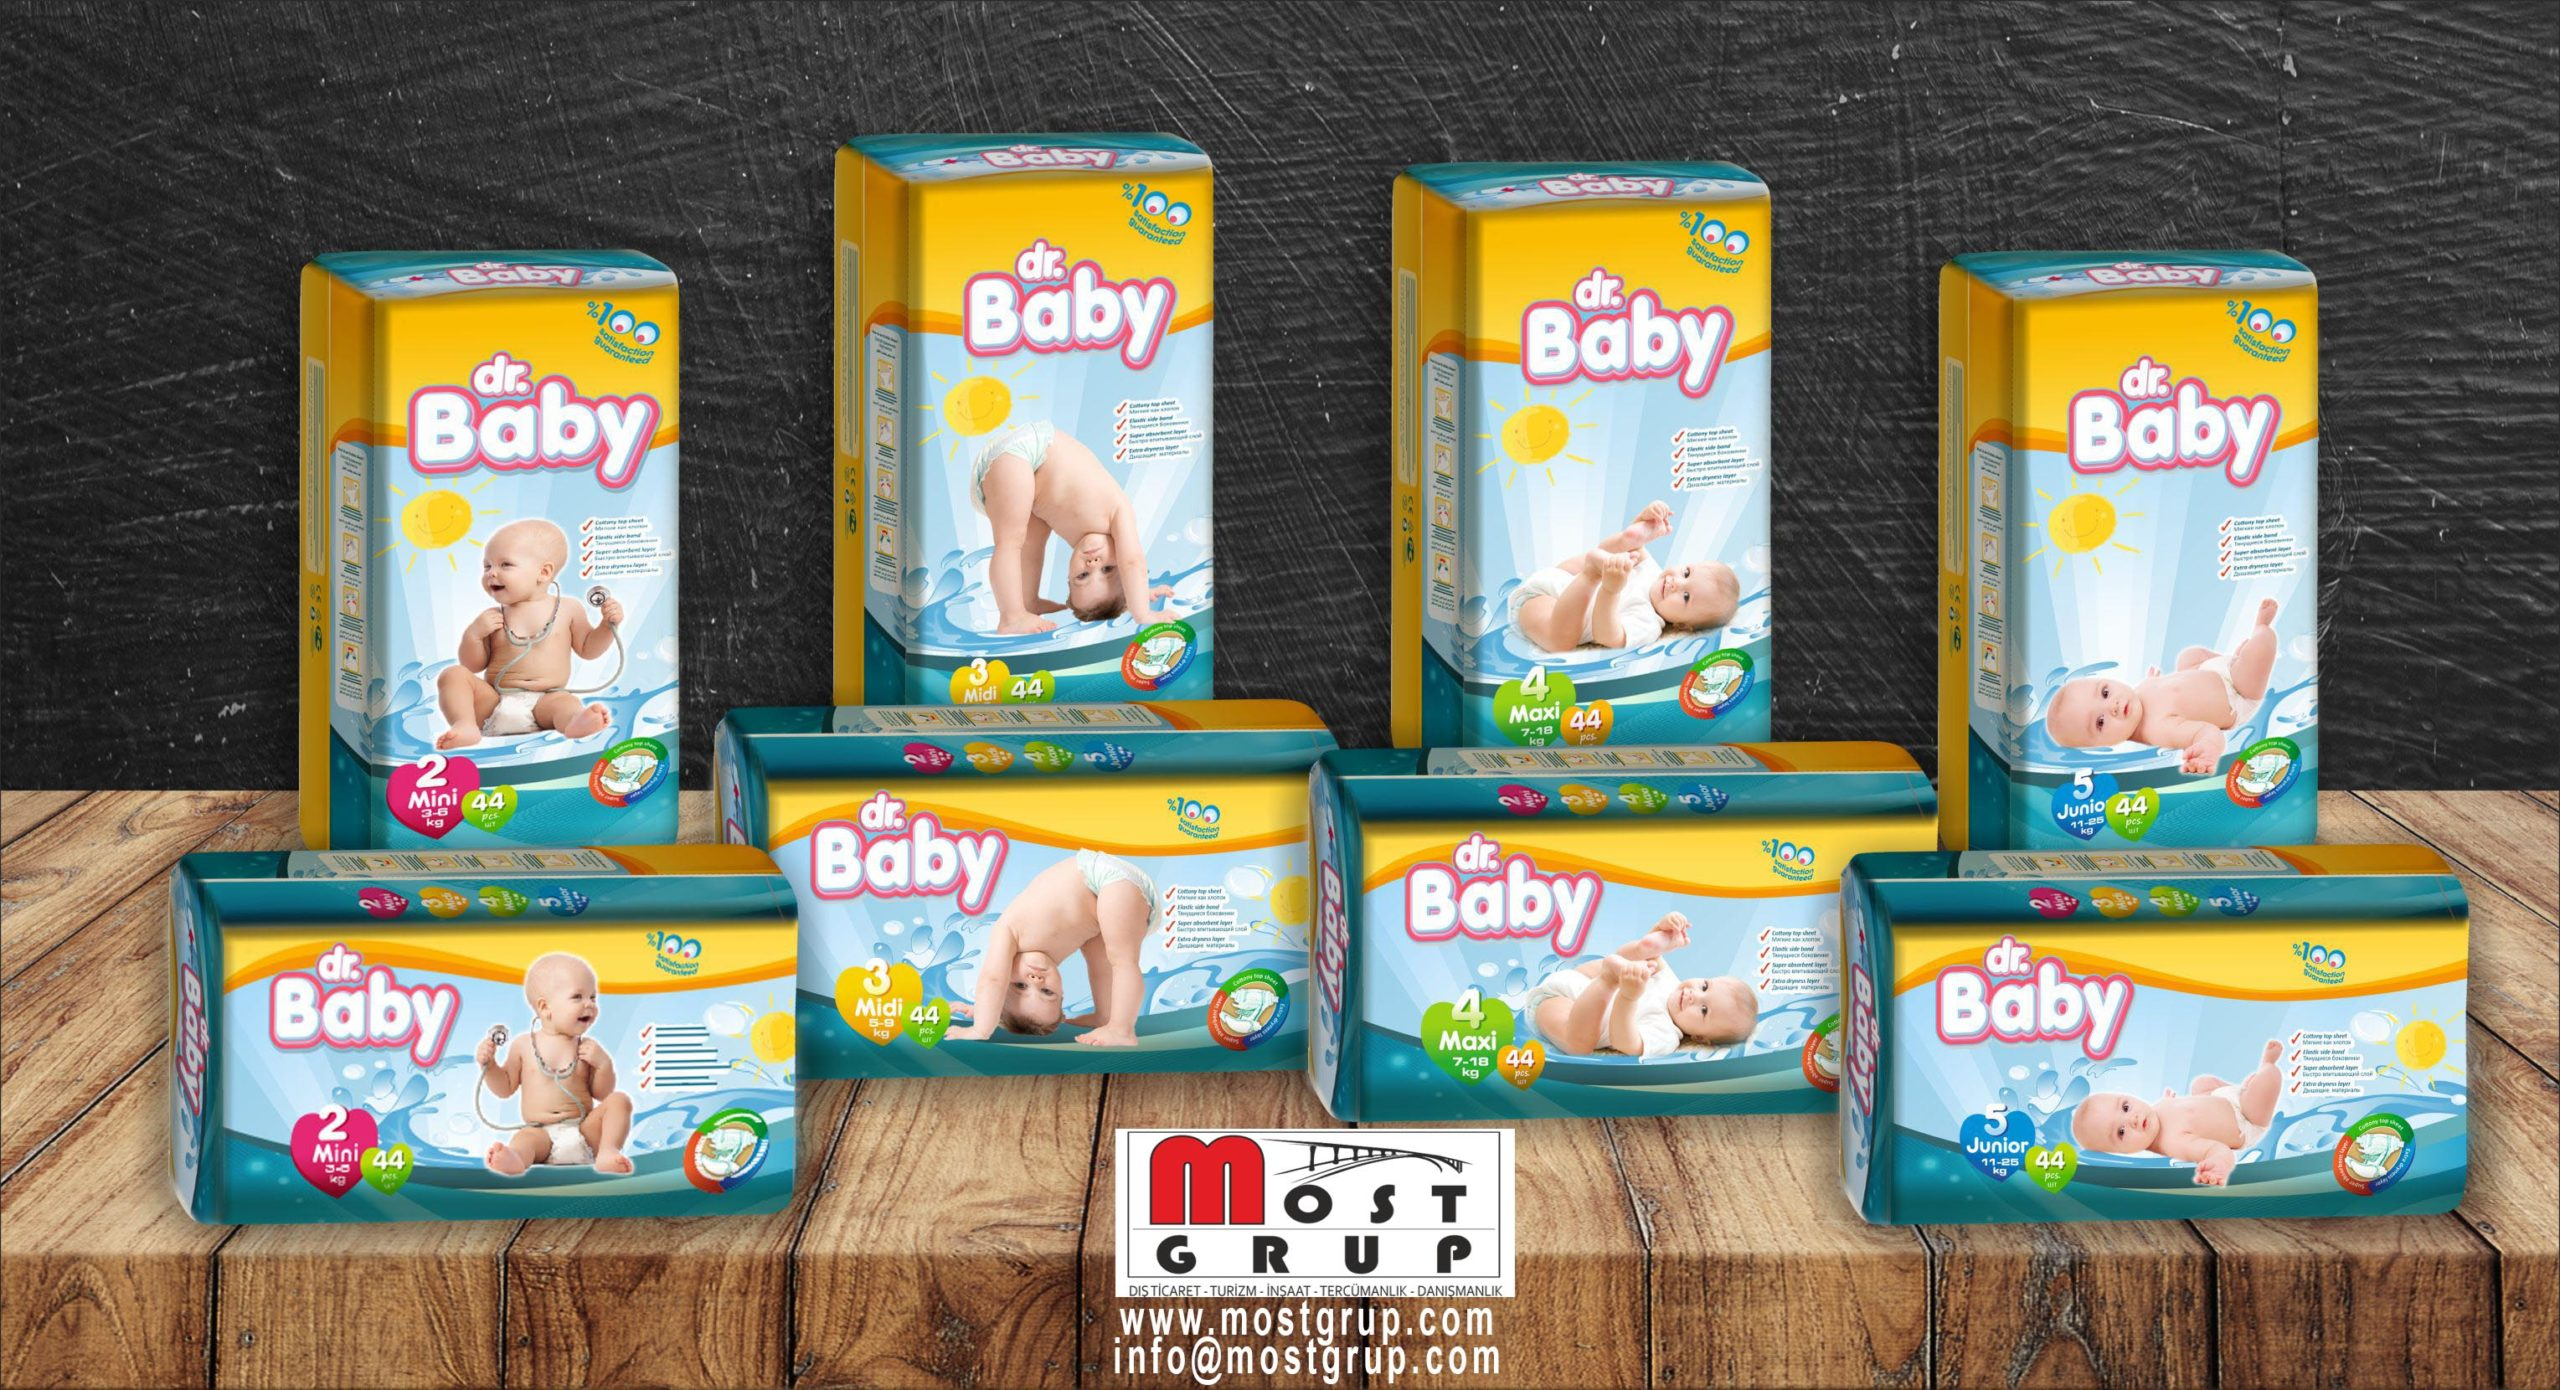 DR BABY DİAPERS